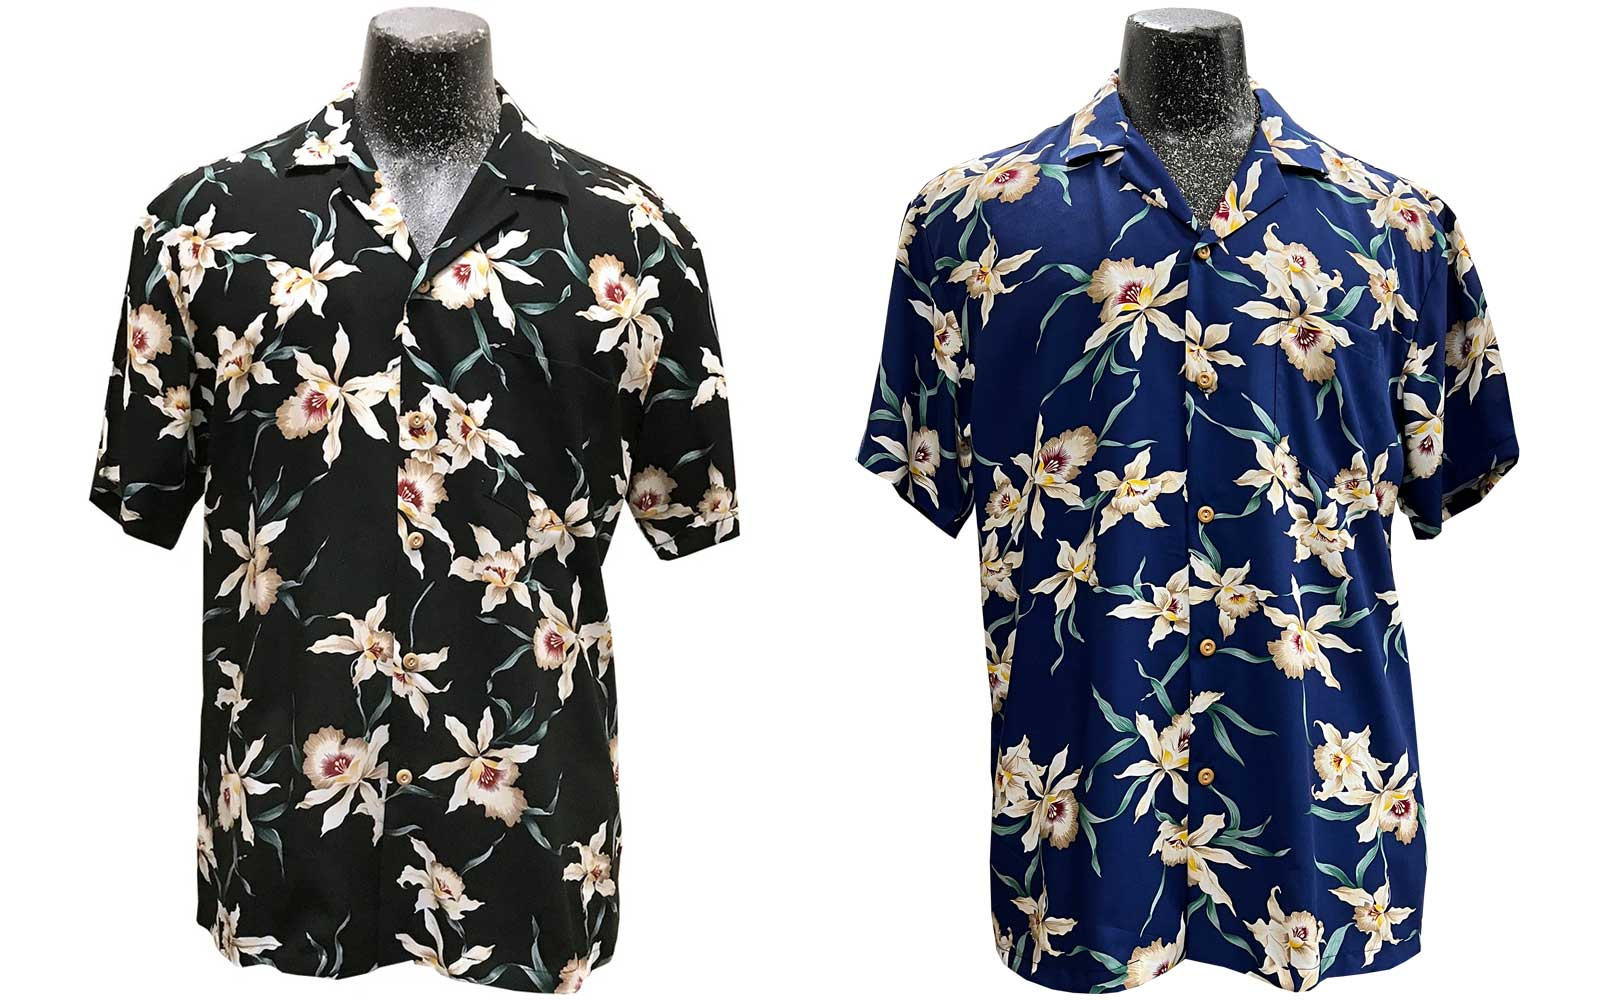 Star Orchid men's shirts in black and navy